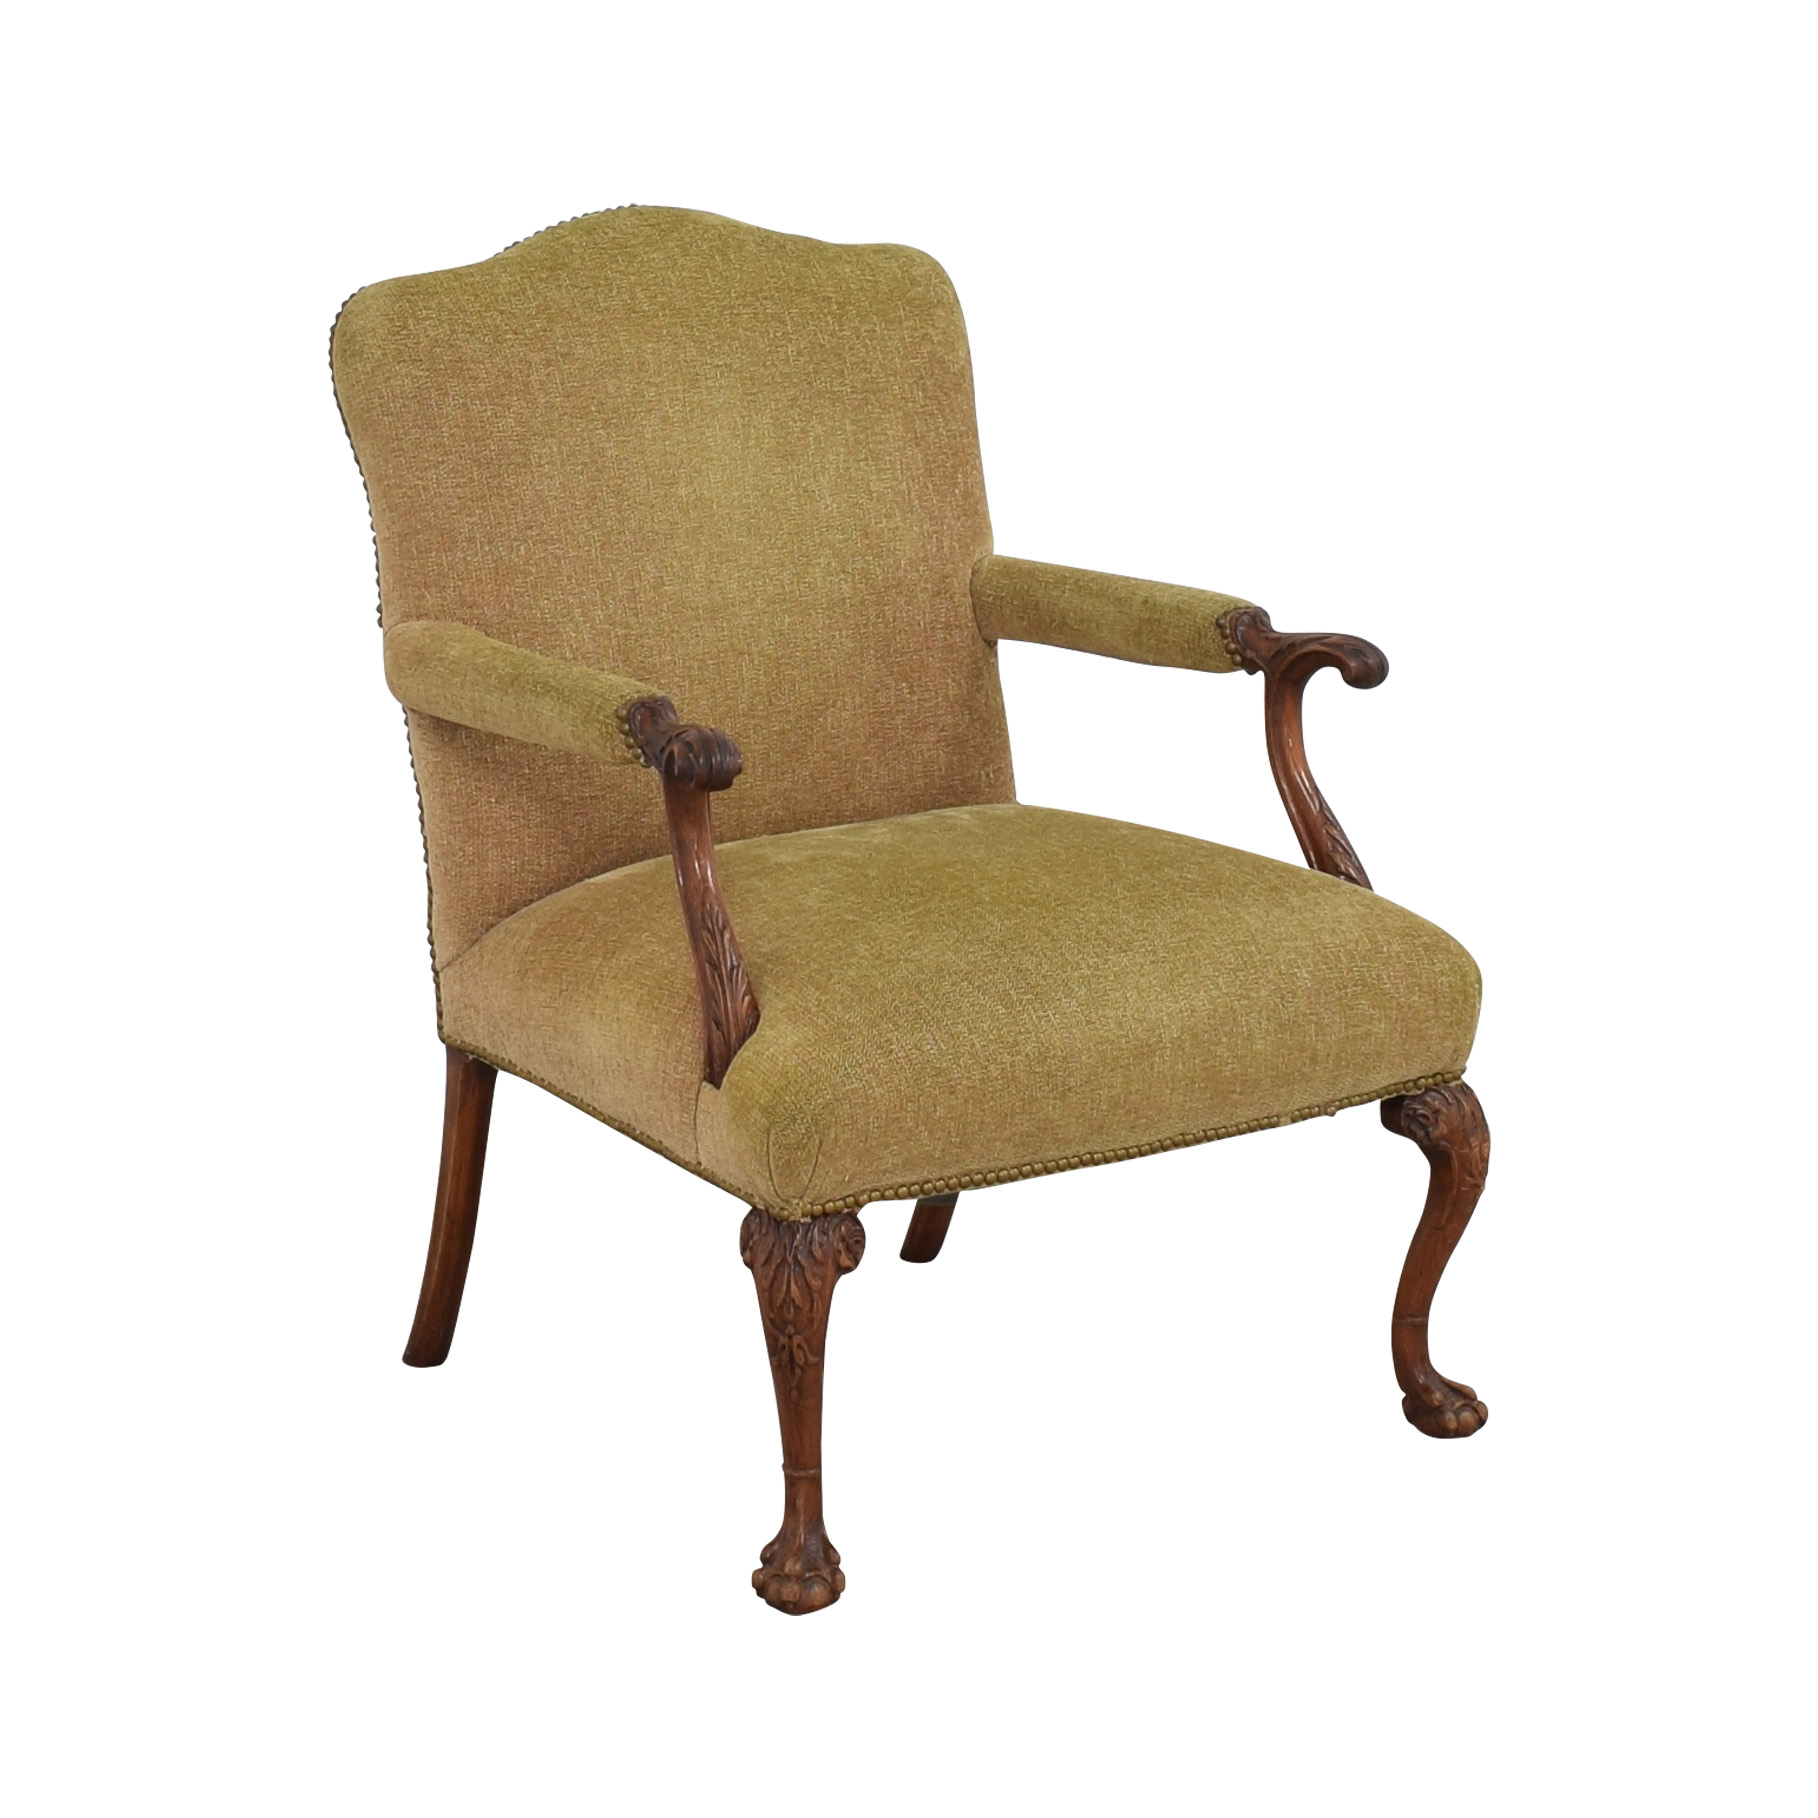 Regency Regency Upholstered Chippendale Occasional Chair